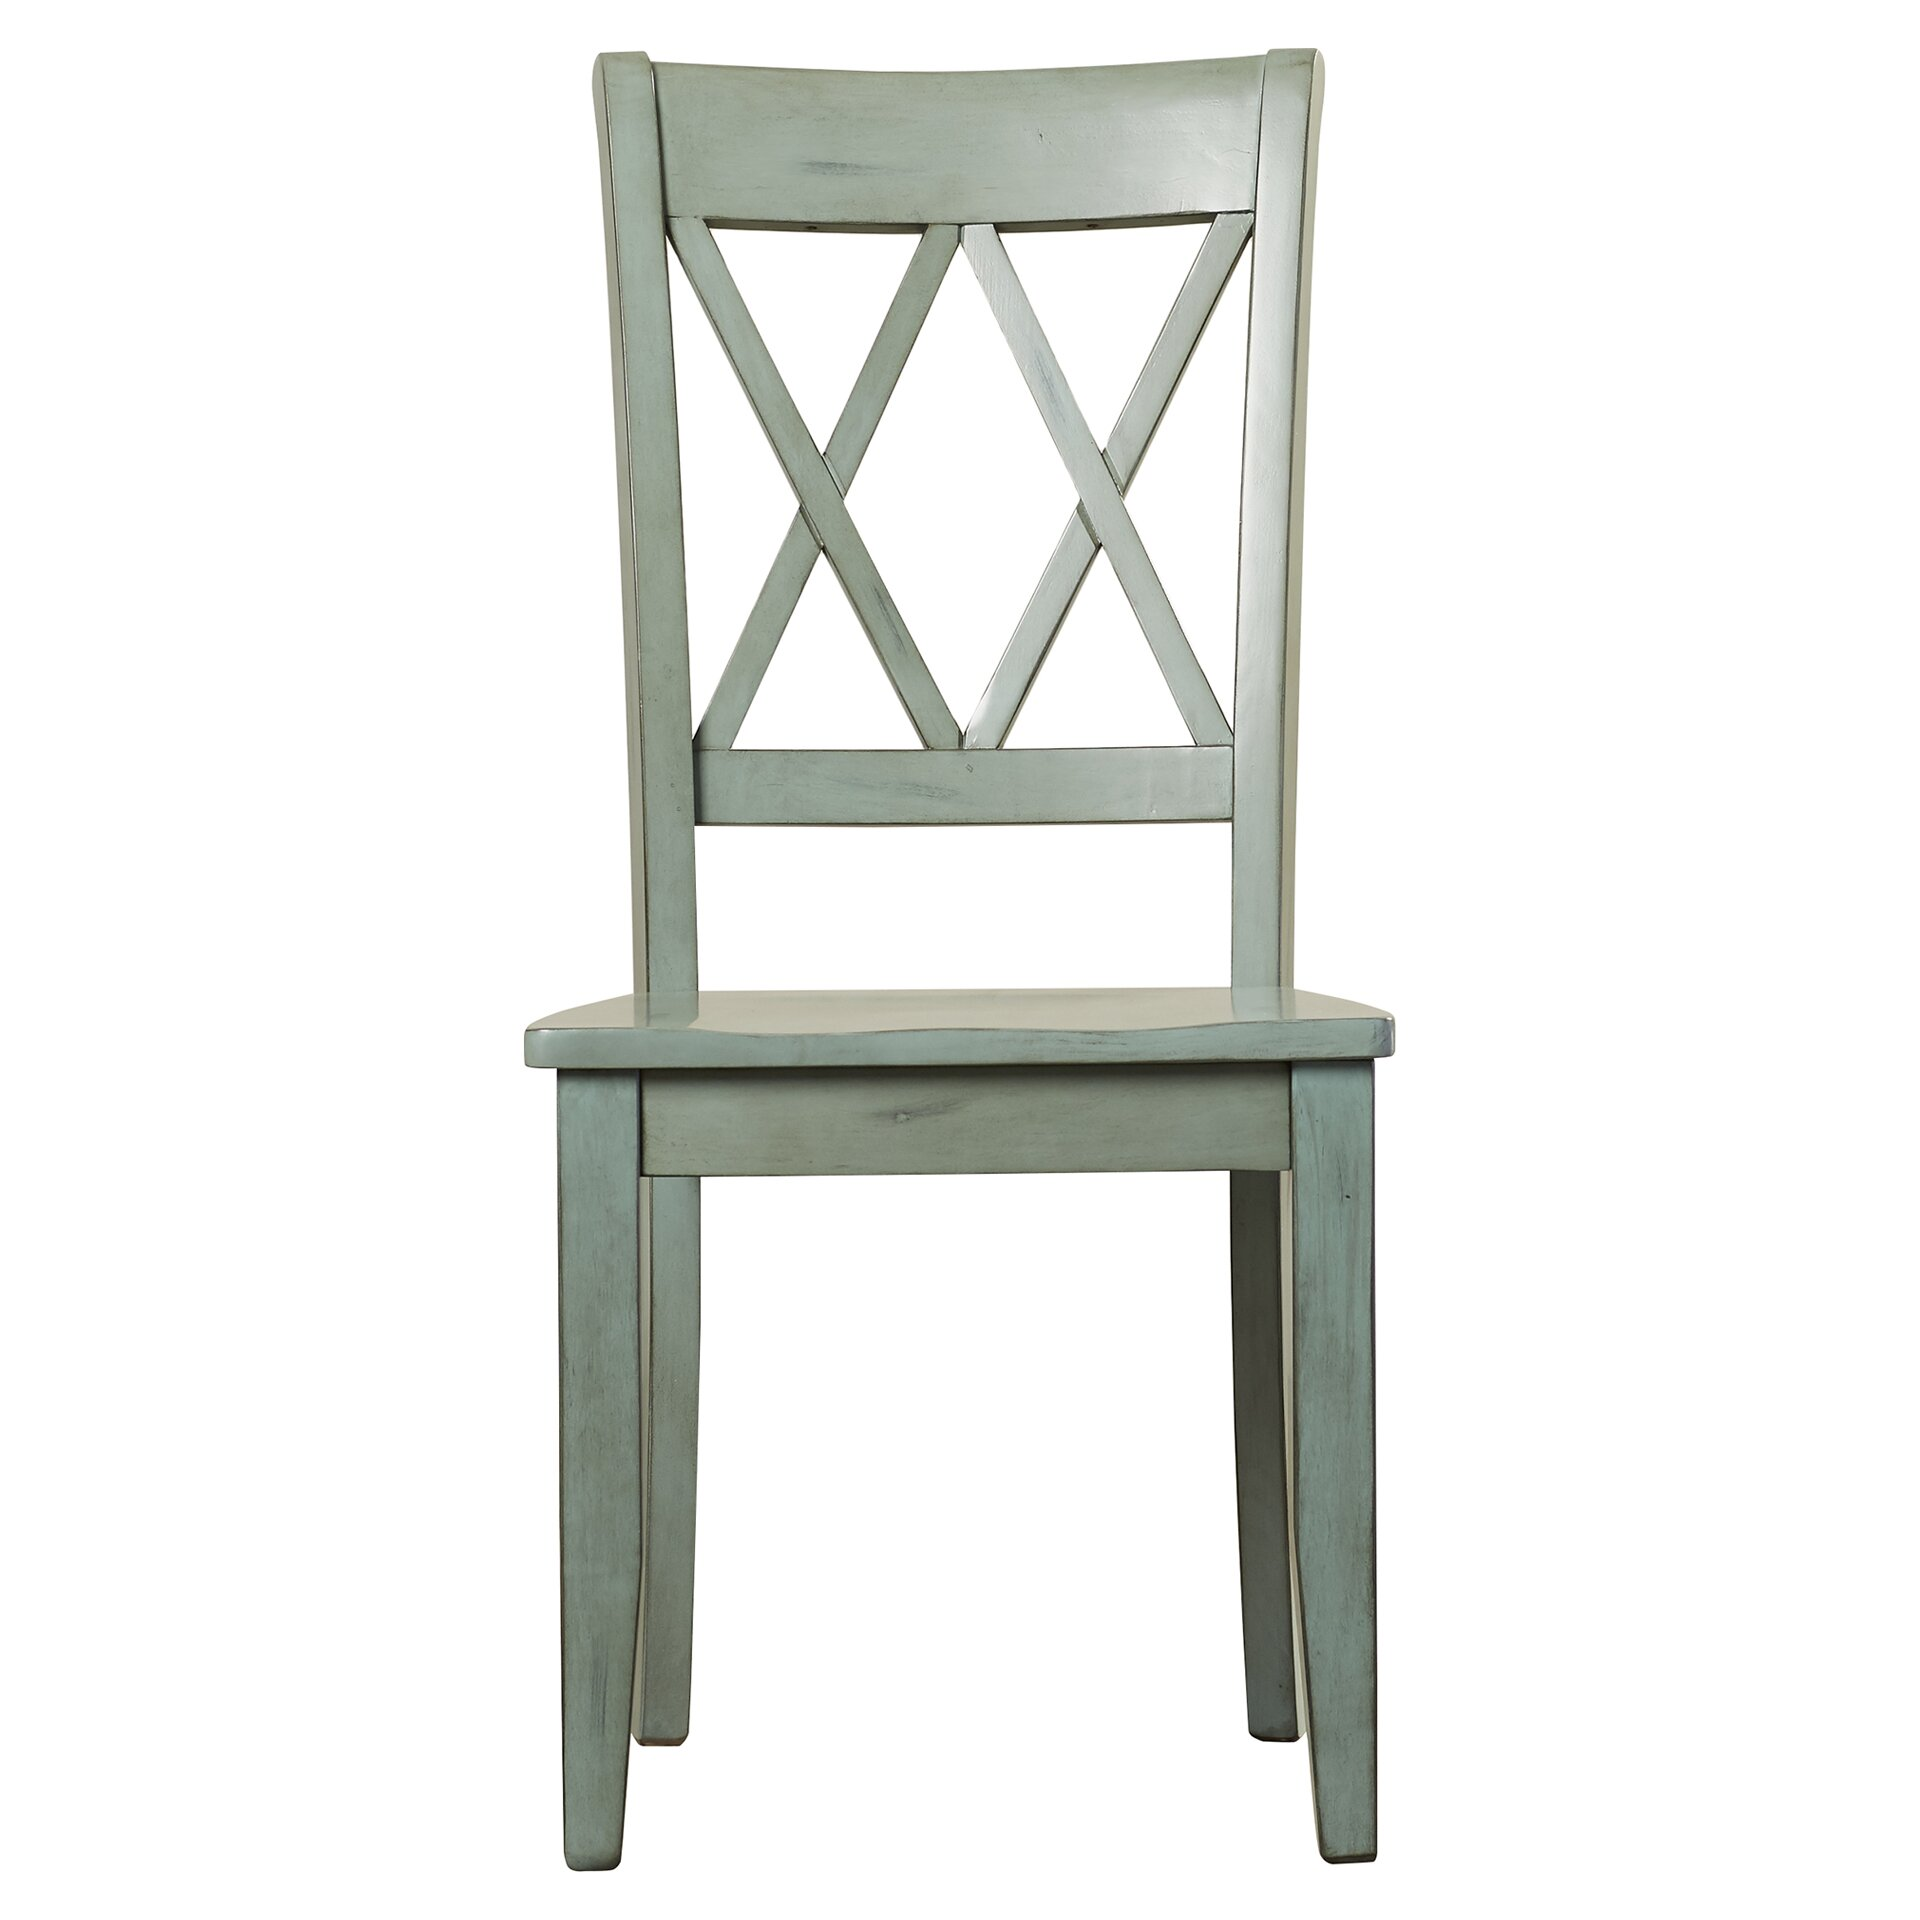 Loon peak castle pines side chair in antique green Peak office furniture